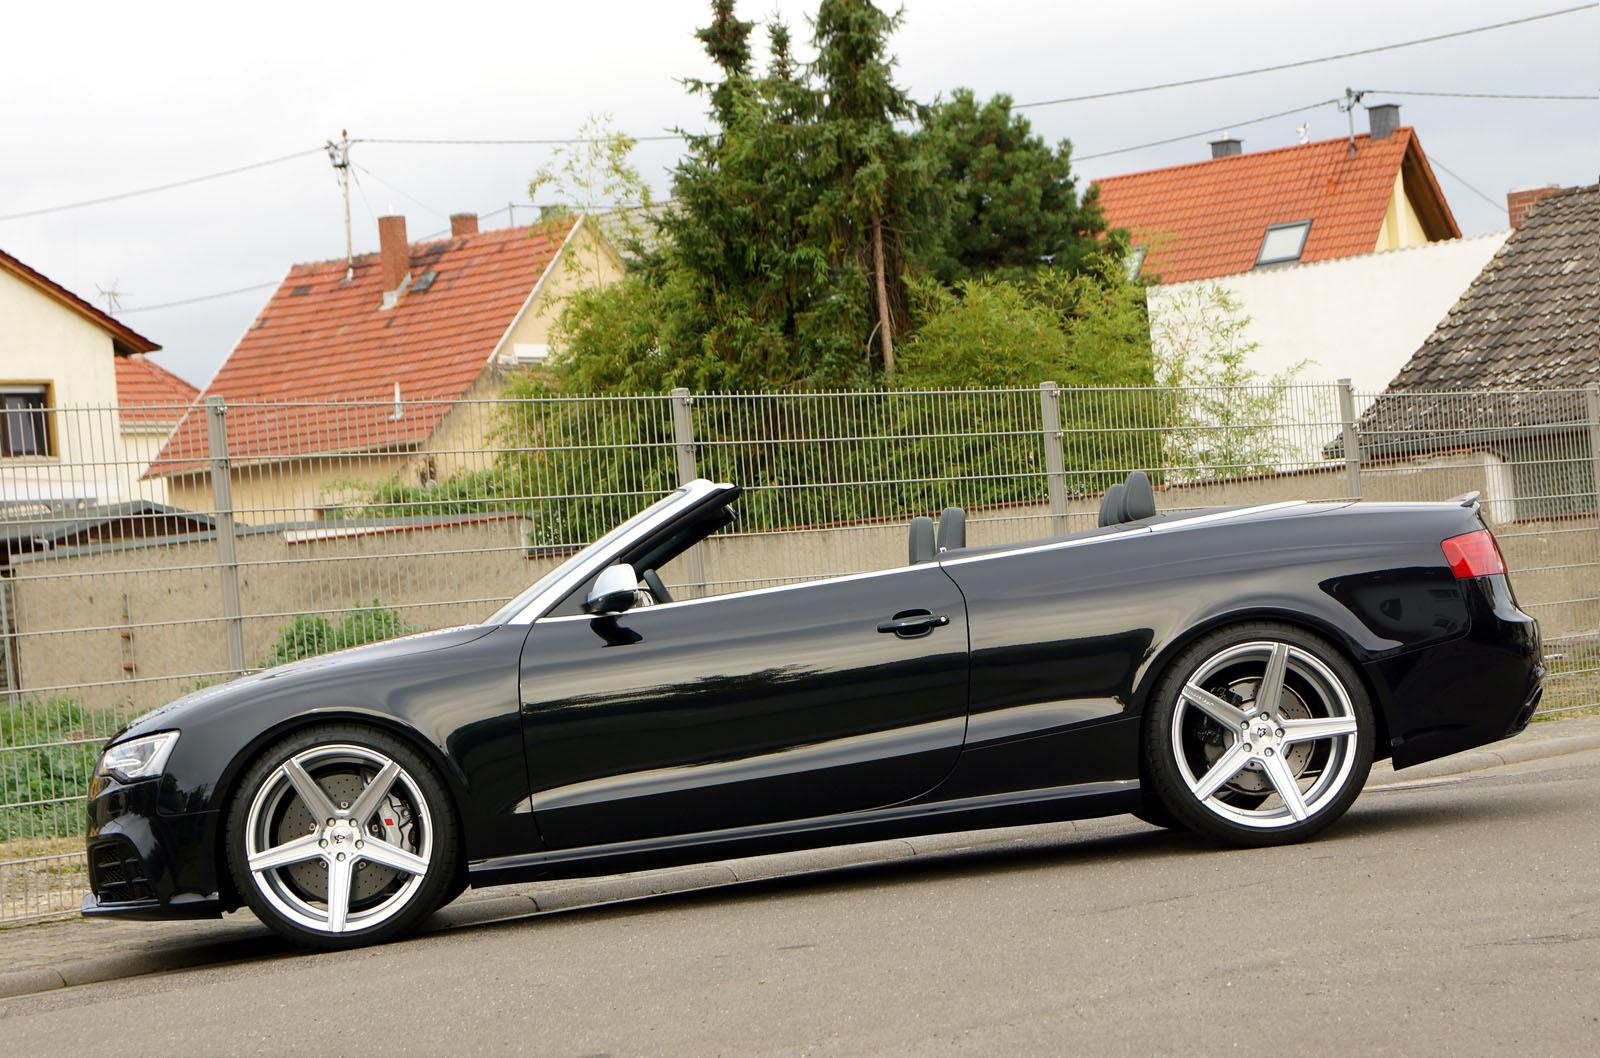 http://www.autoblog.gr/wp-content/gallery/audi-rs5-cabrio-by-senner-tuning/1369344270922685519.jpg